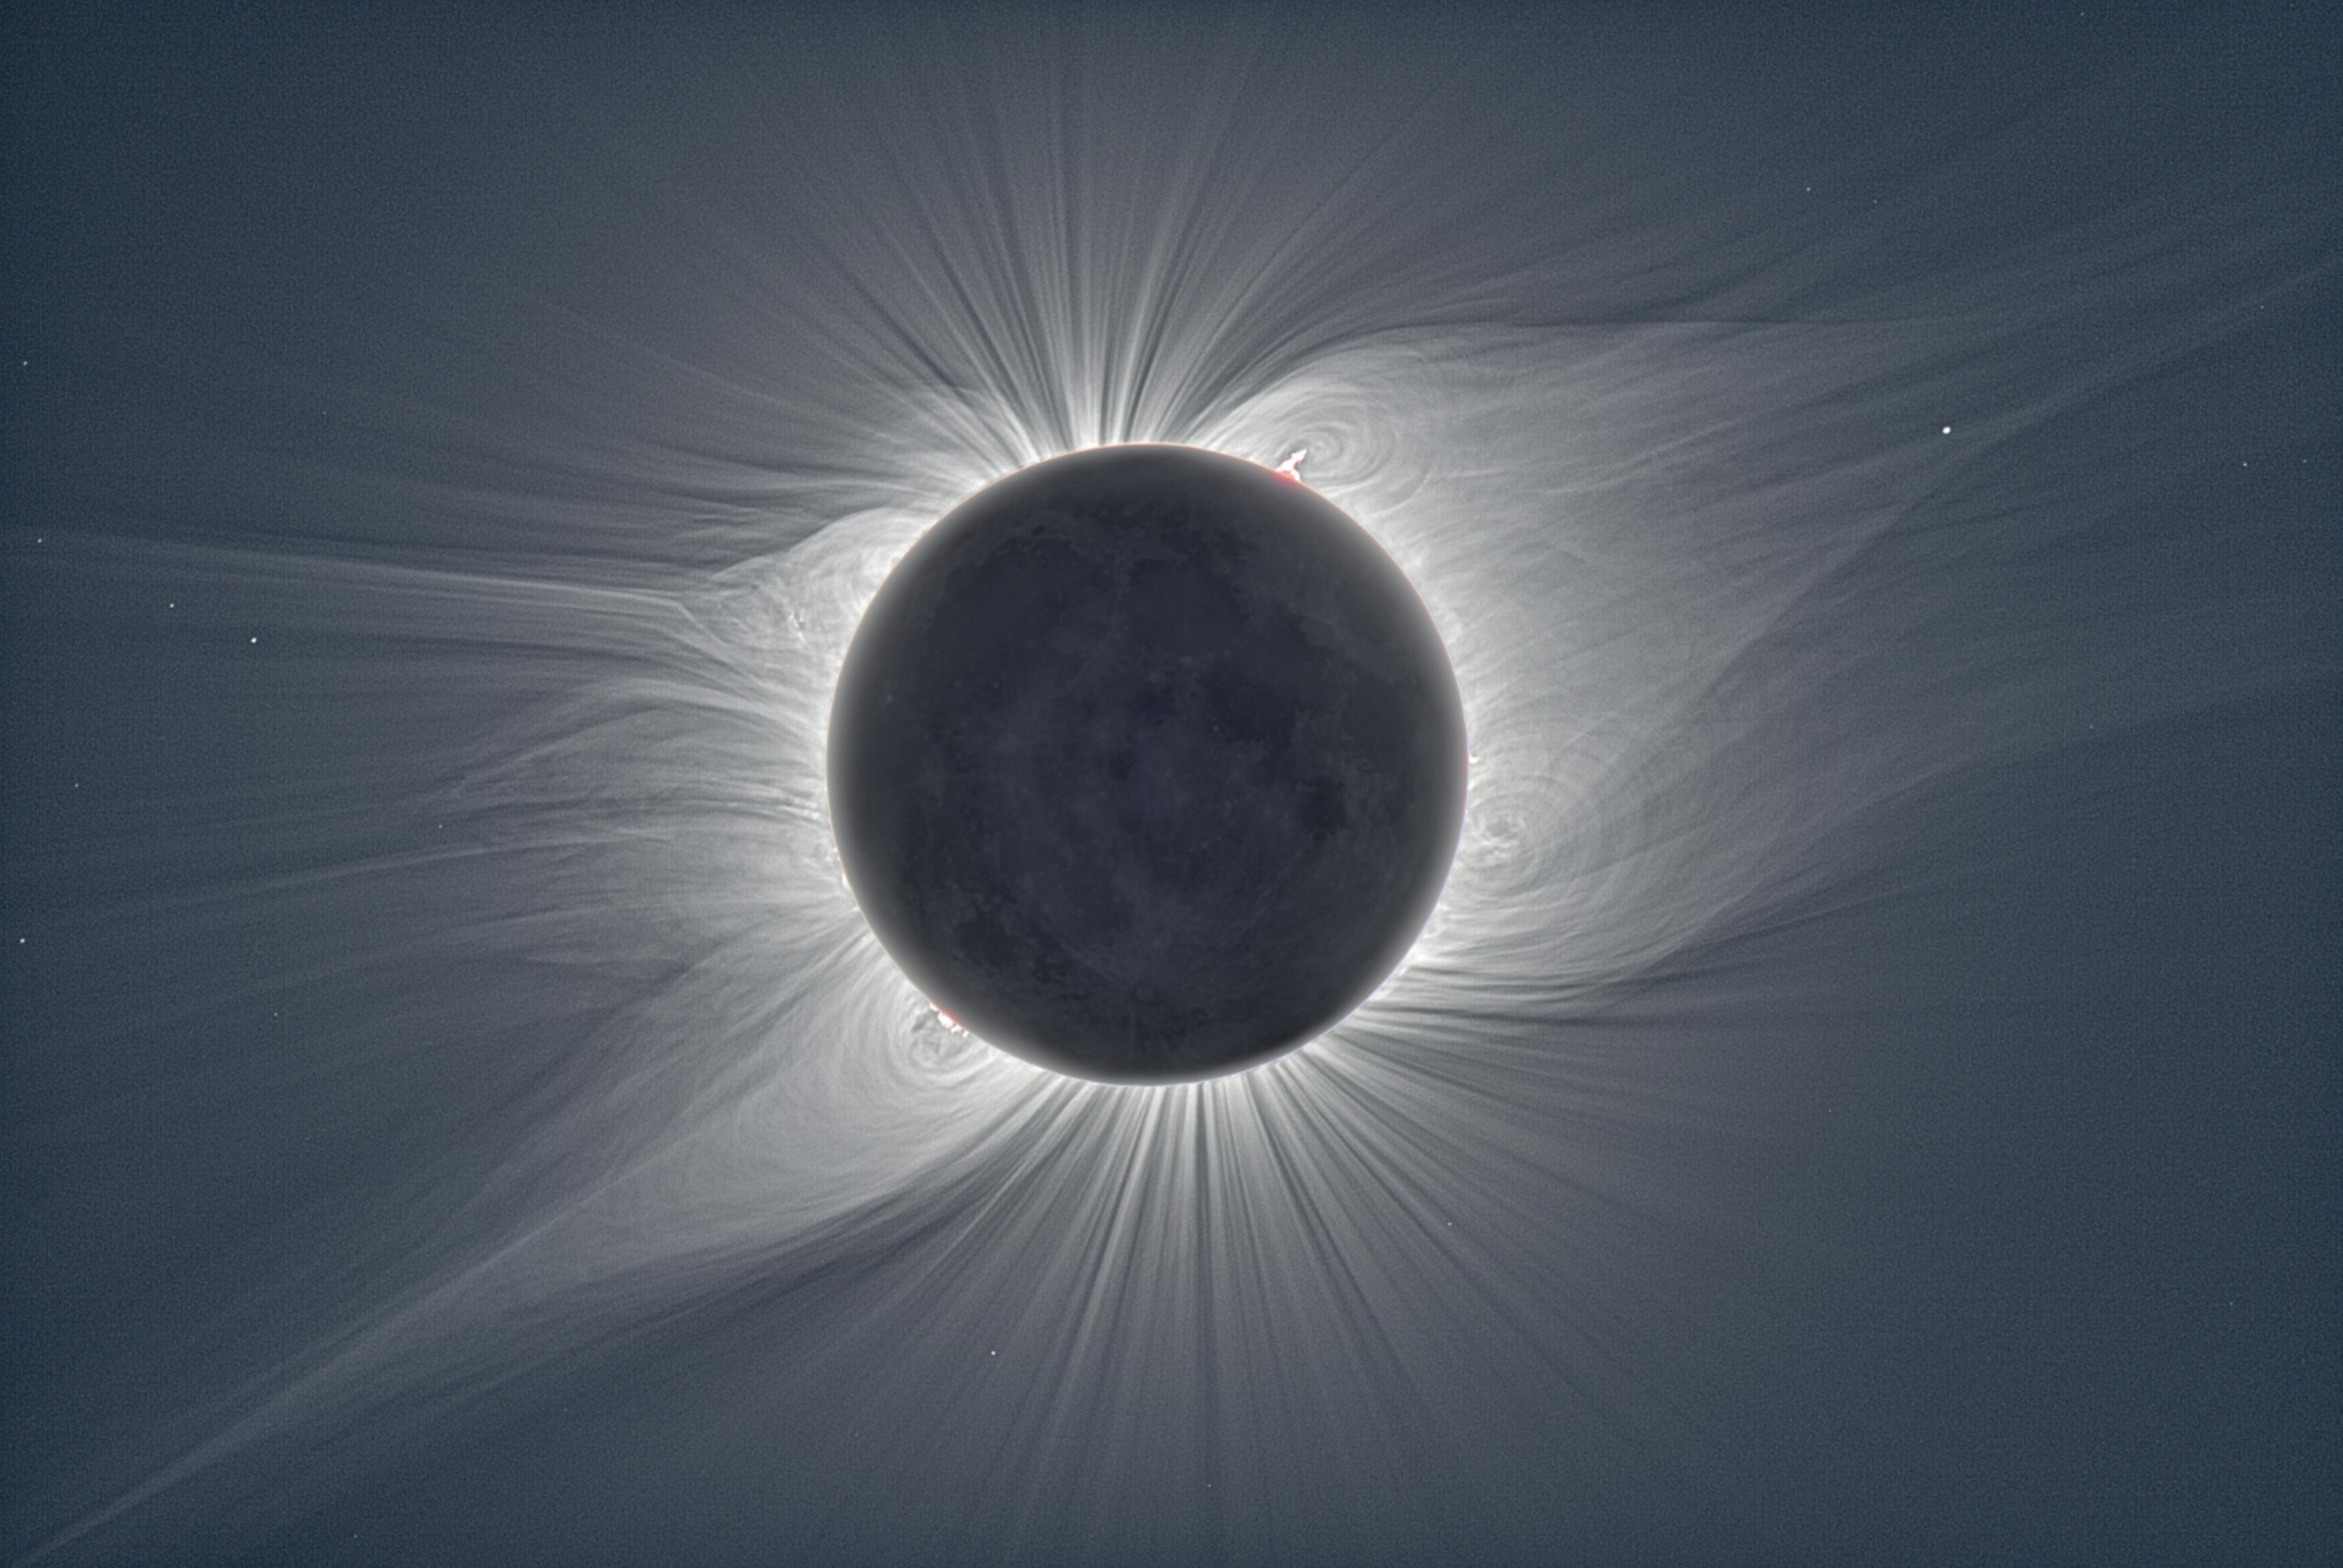 A total Solar Eclipse photographed in 2008. This composite combines hundreds of images showing exactly what the human eye would see if it was possible to remove the blinding glare caused by the heavenly event.